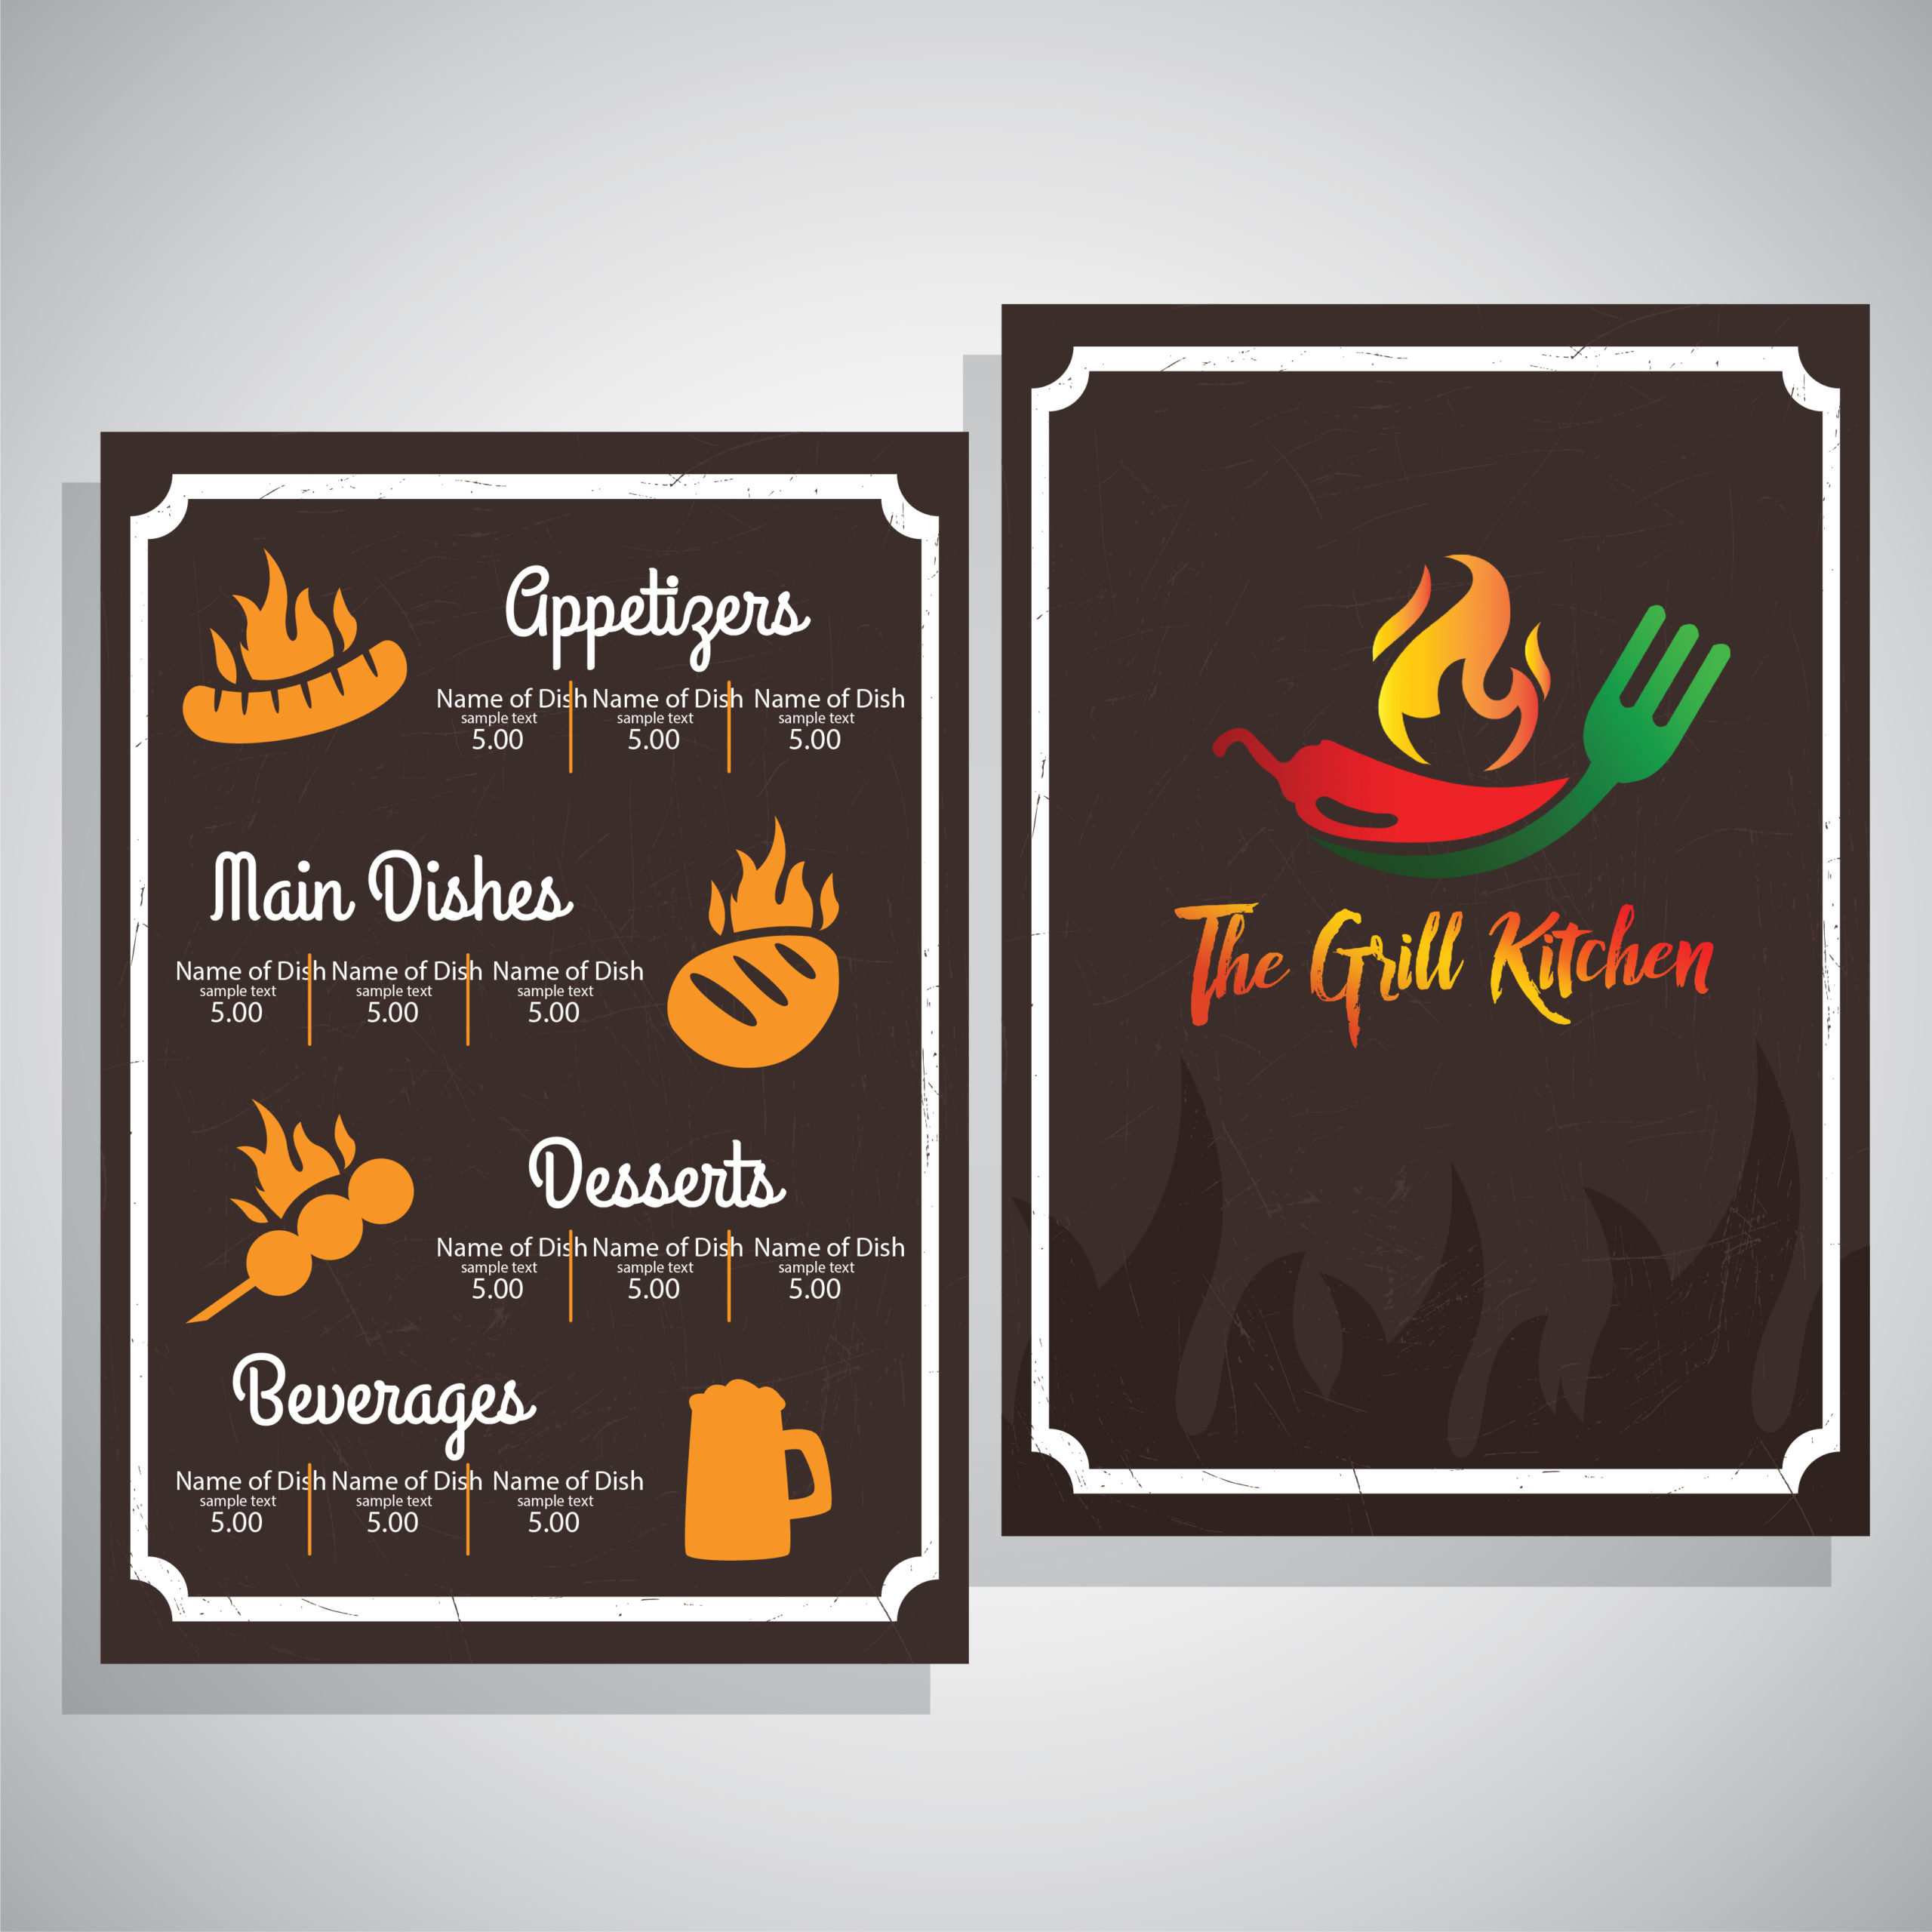 The grill kitchen restaurant menu card design by Badri Design